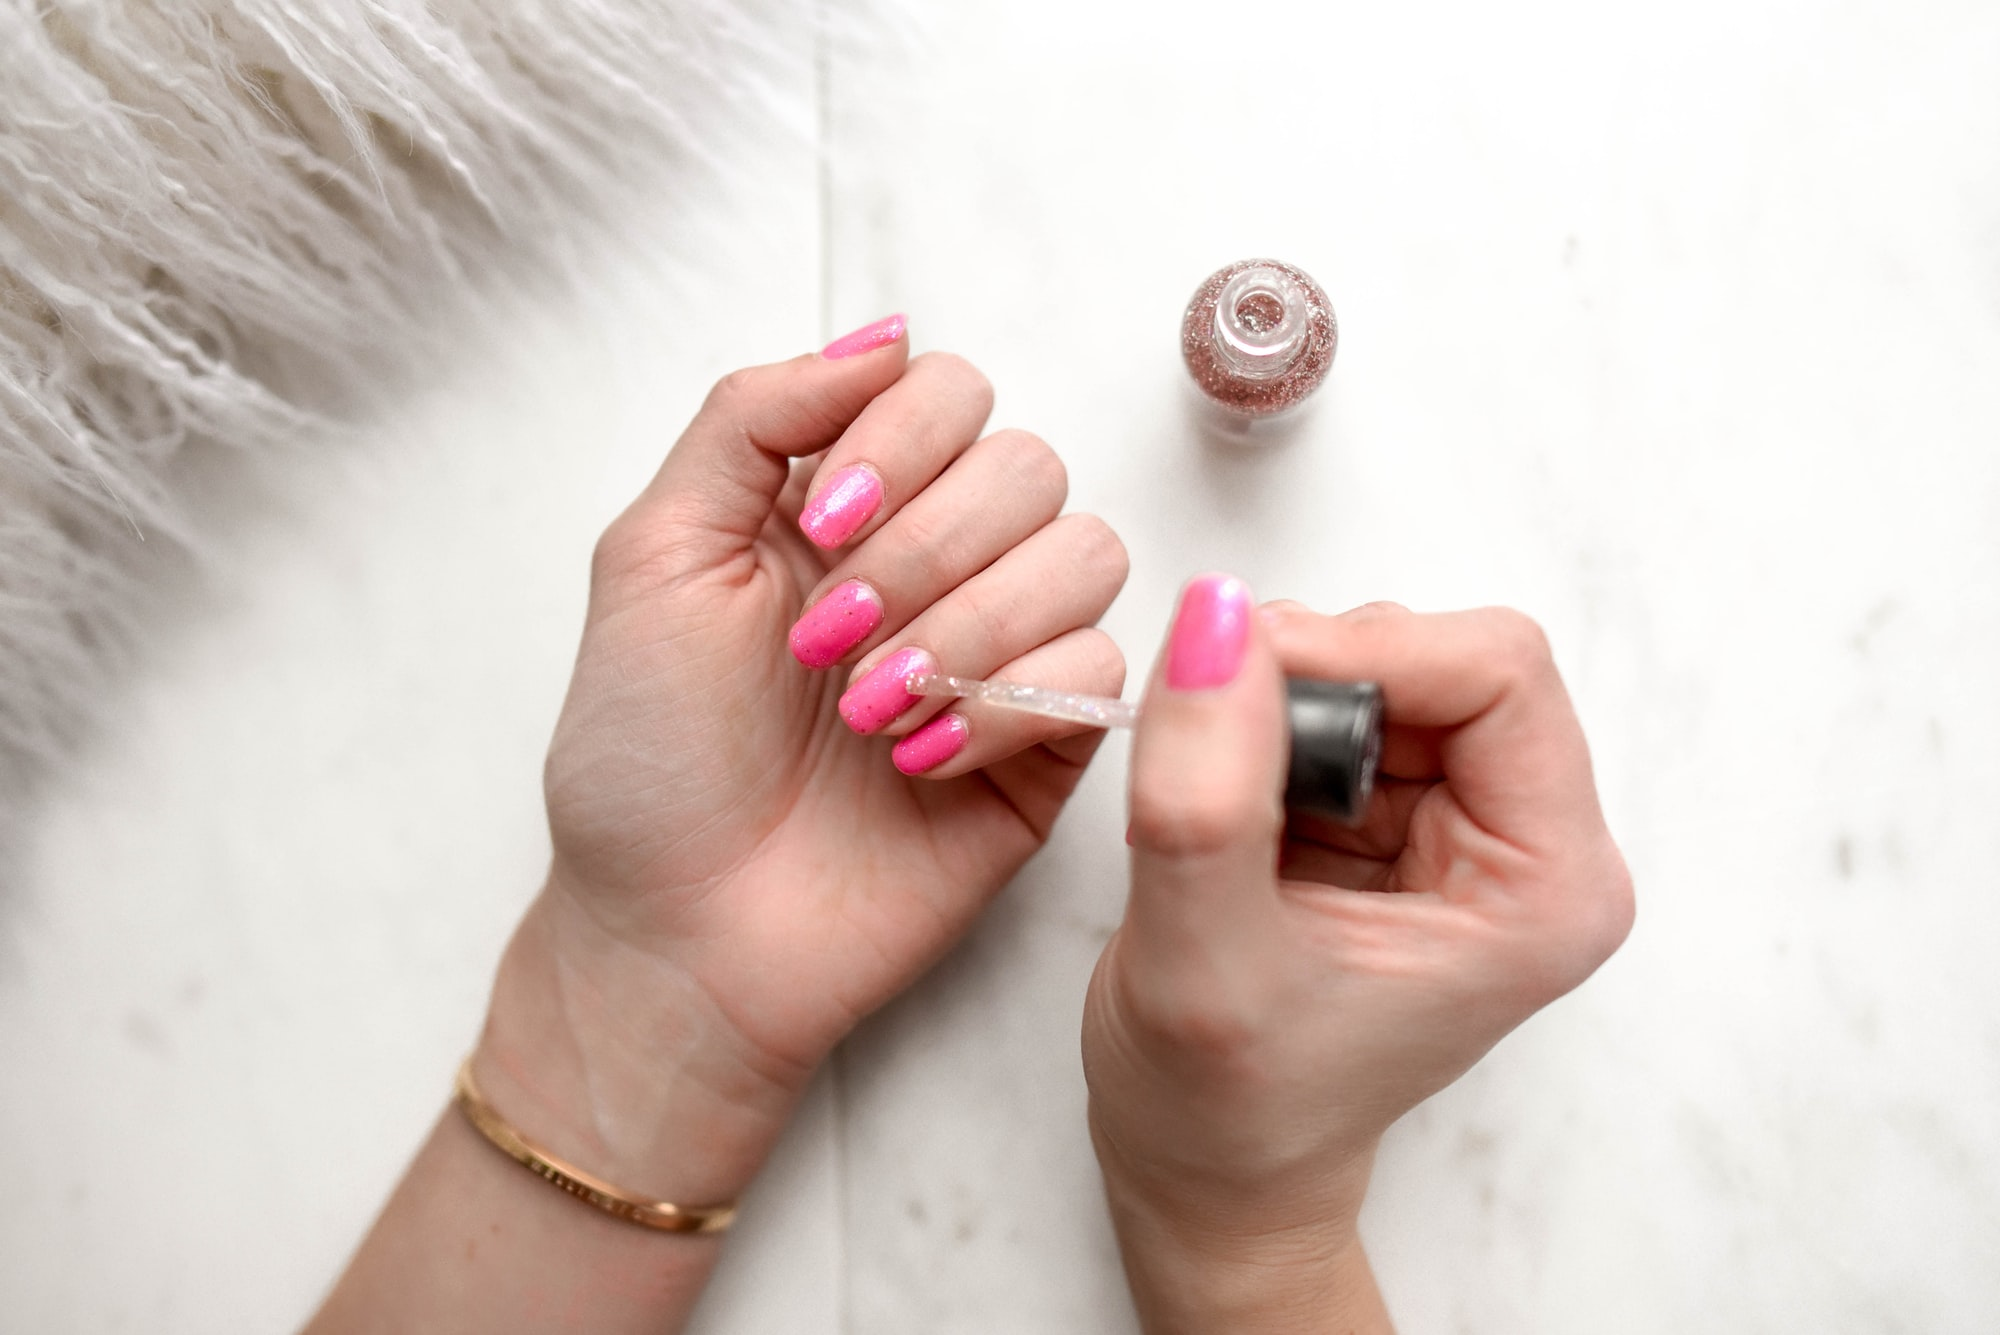 5 of Houston's best nail salons/techs according to our followers